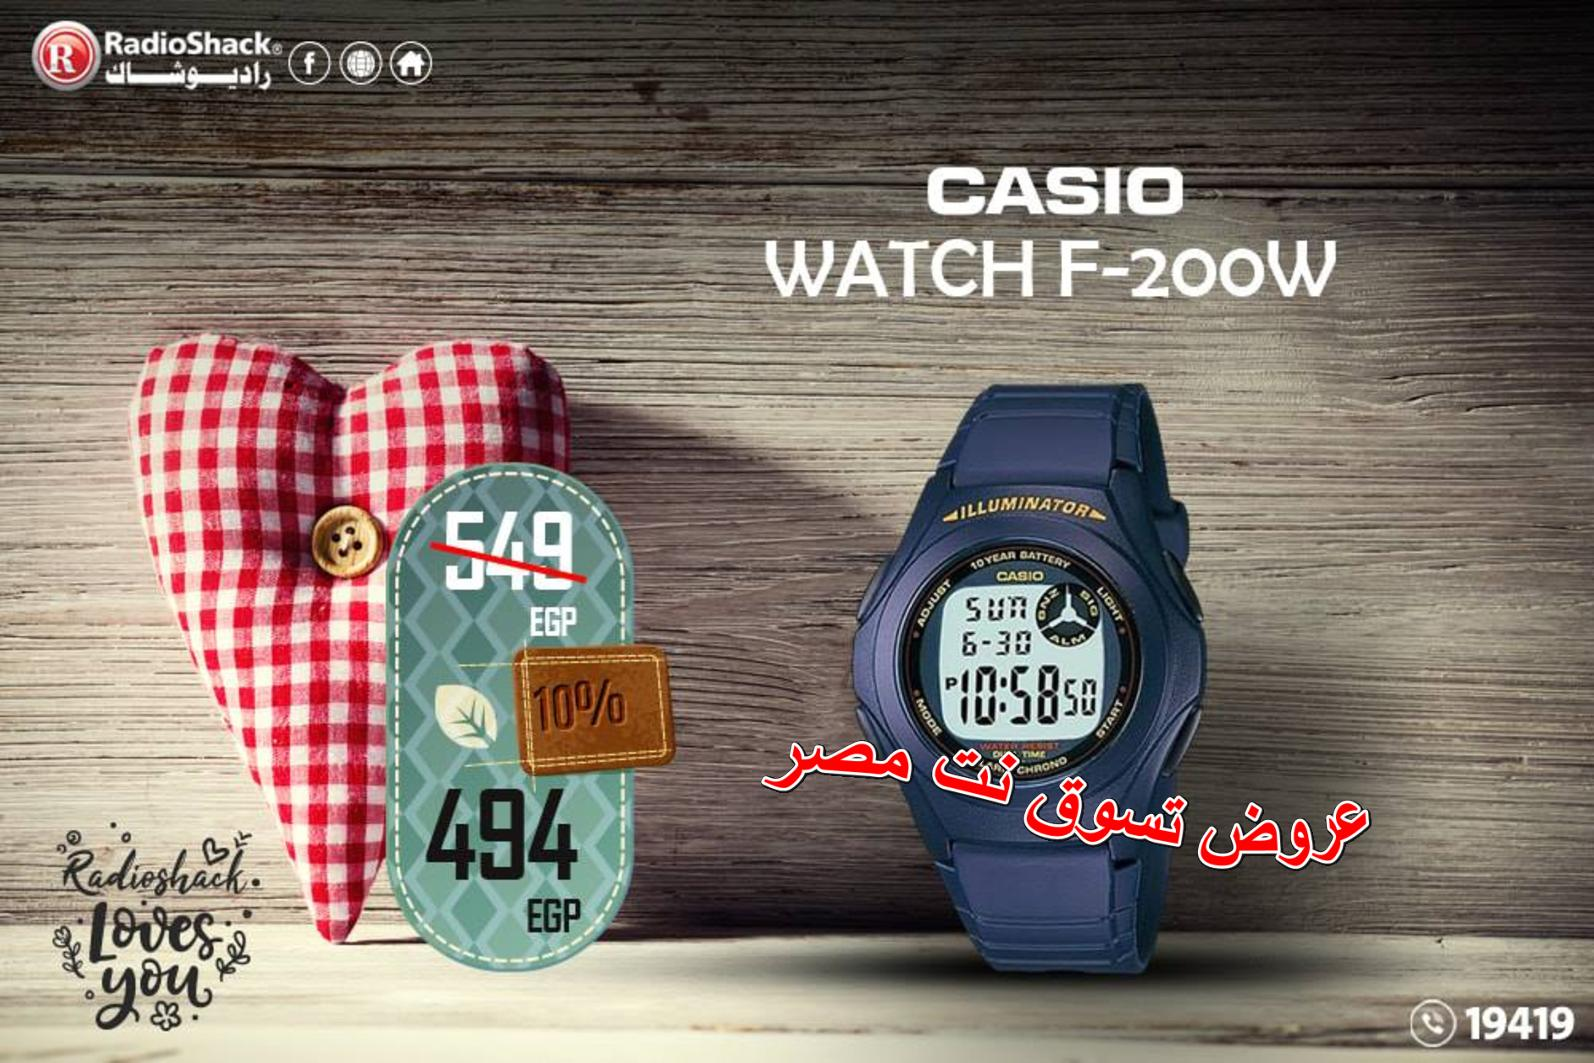 7b4727852 Radio Shack Egypt offers on Casio Watches from 13-2-2019